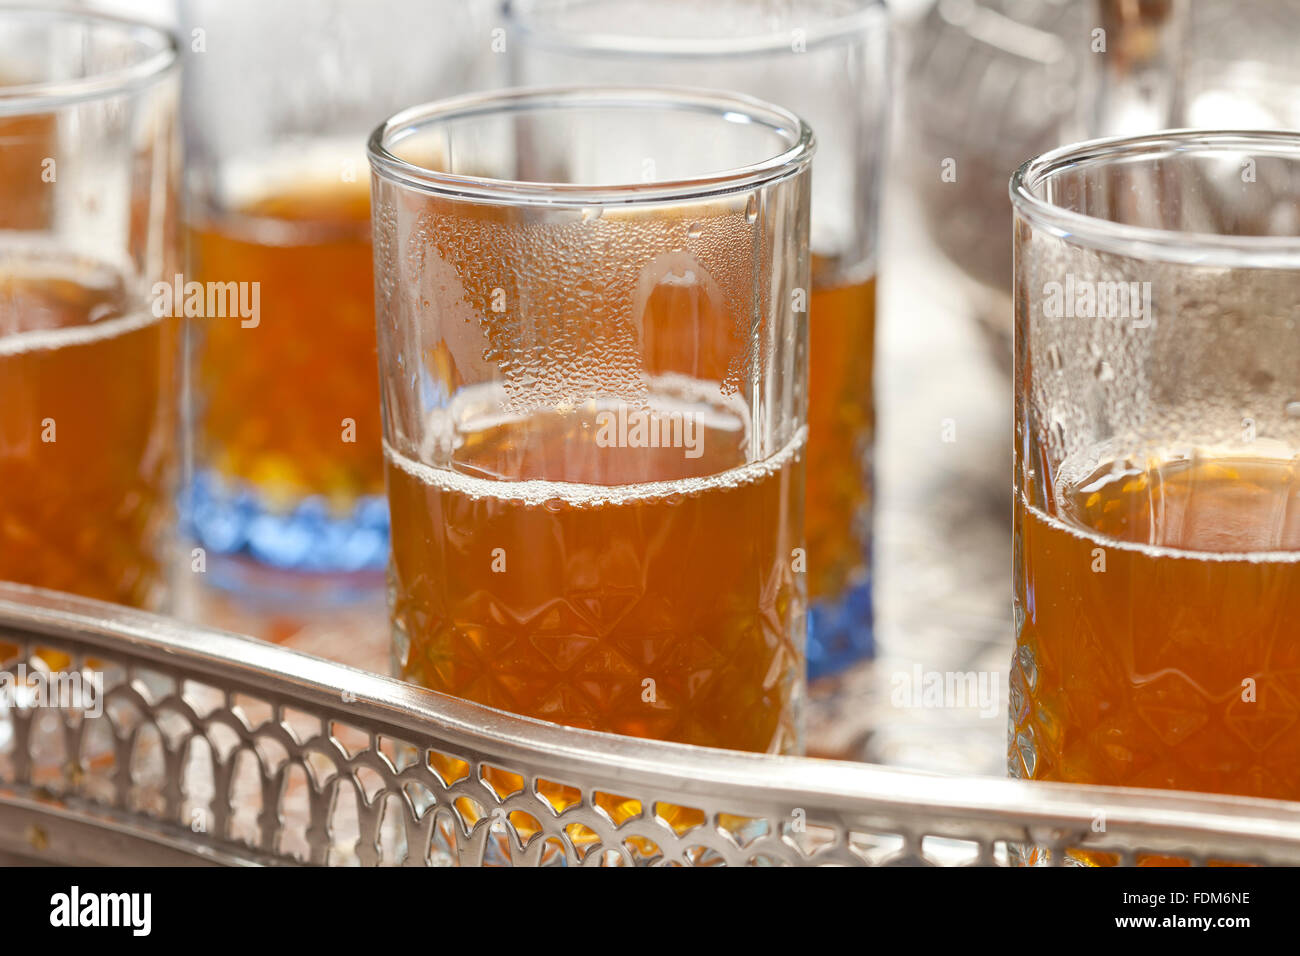 Traditional Moroccan tea  in glasses on a tray - Stock Image